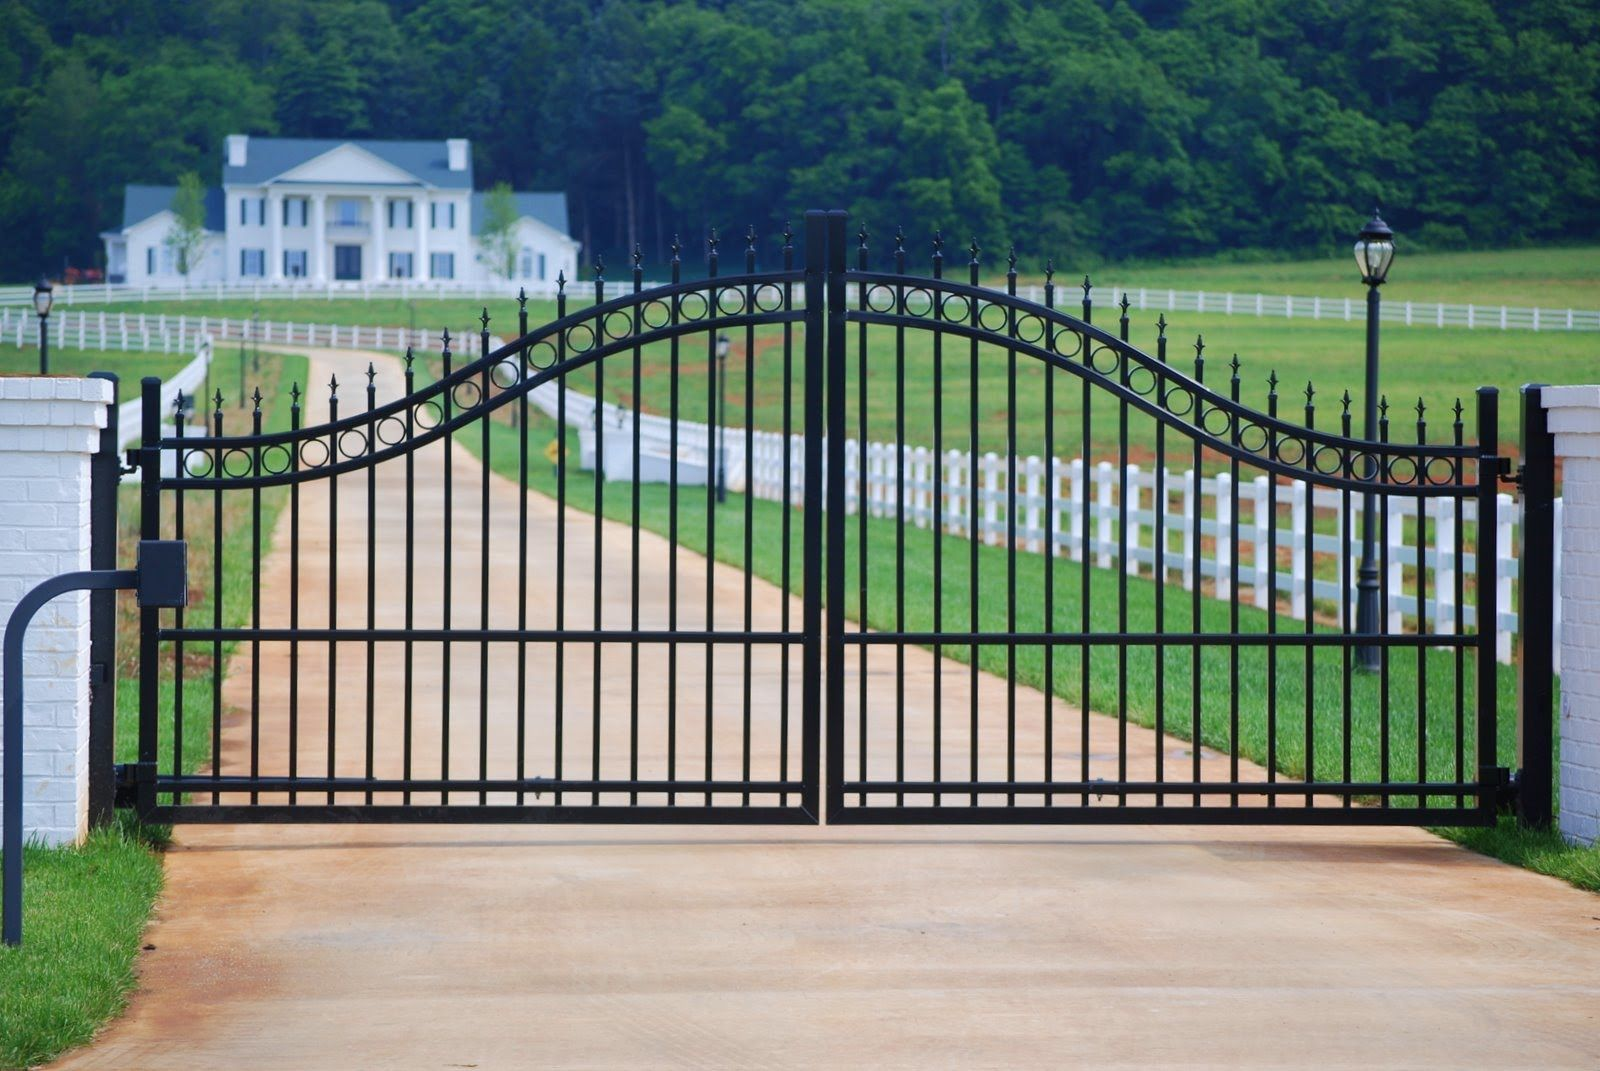 17 Best images about Driveway Gates on Pinterest | Iron gates, Metal gates  and Wrought iron